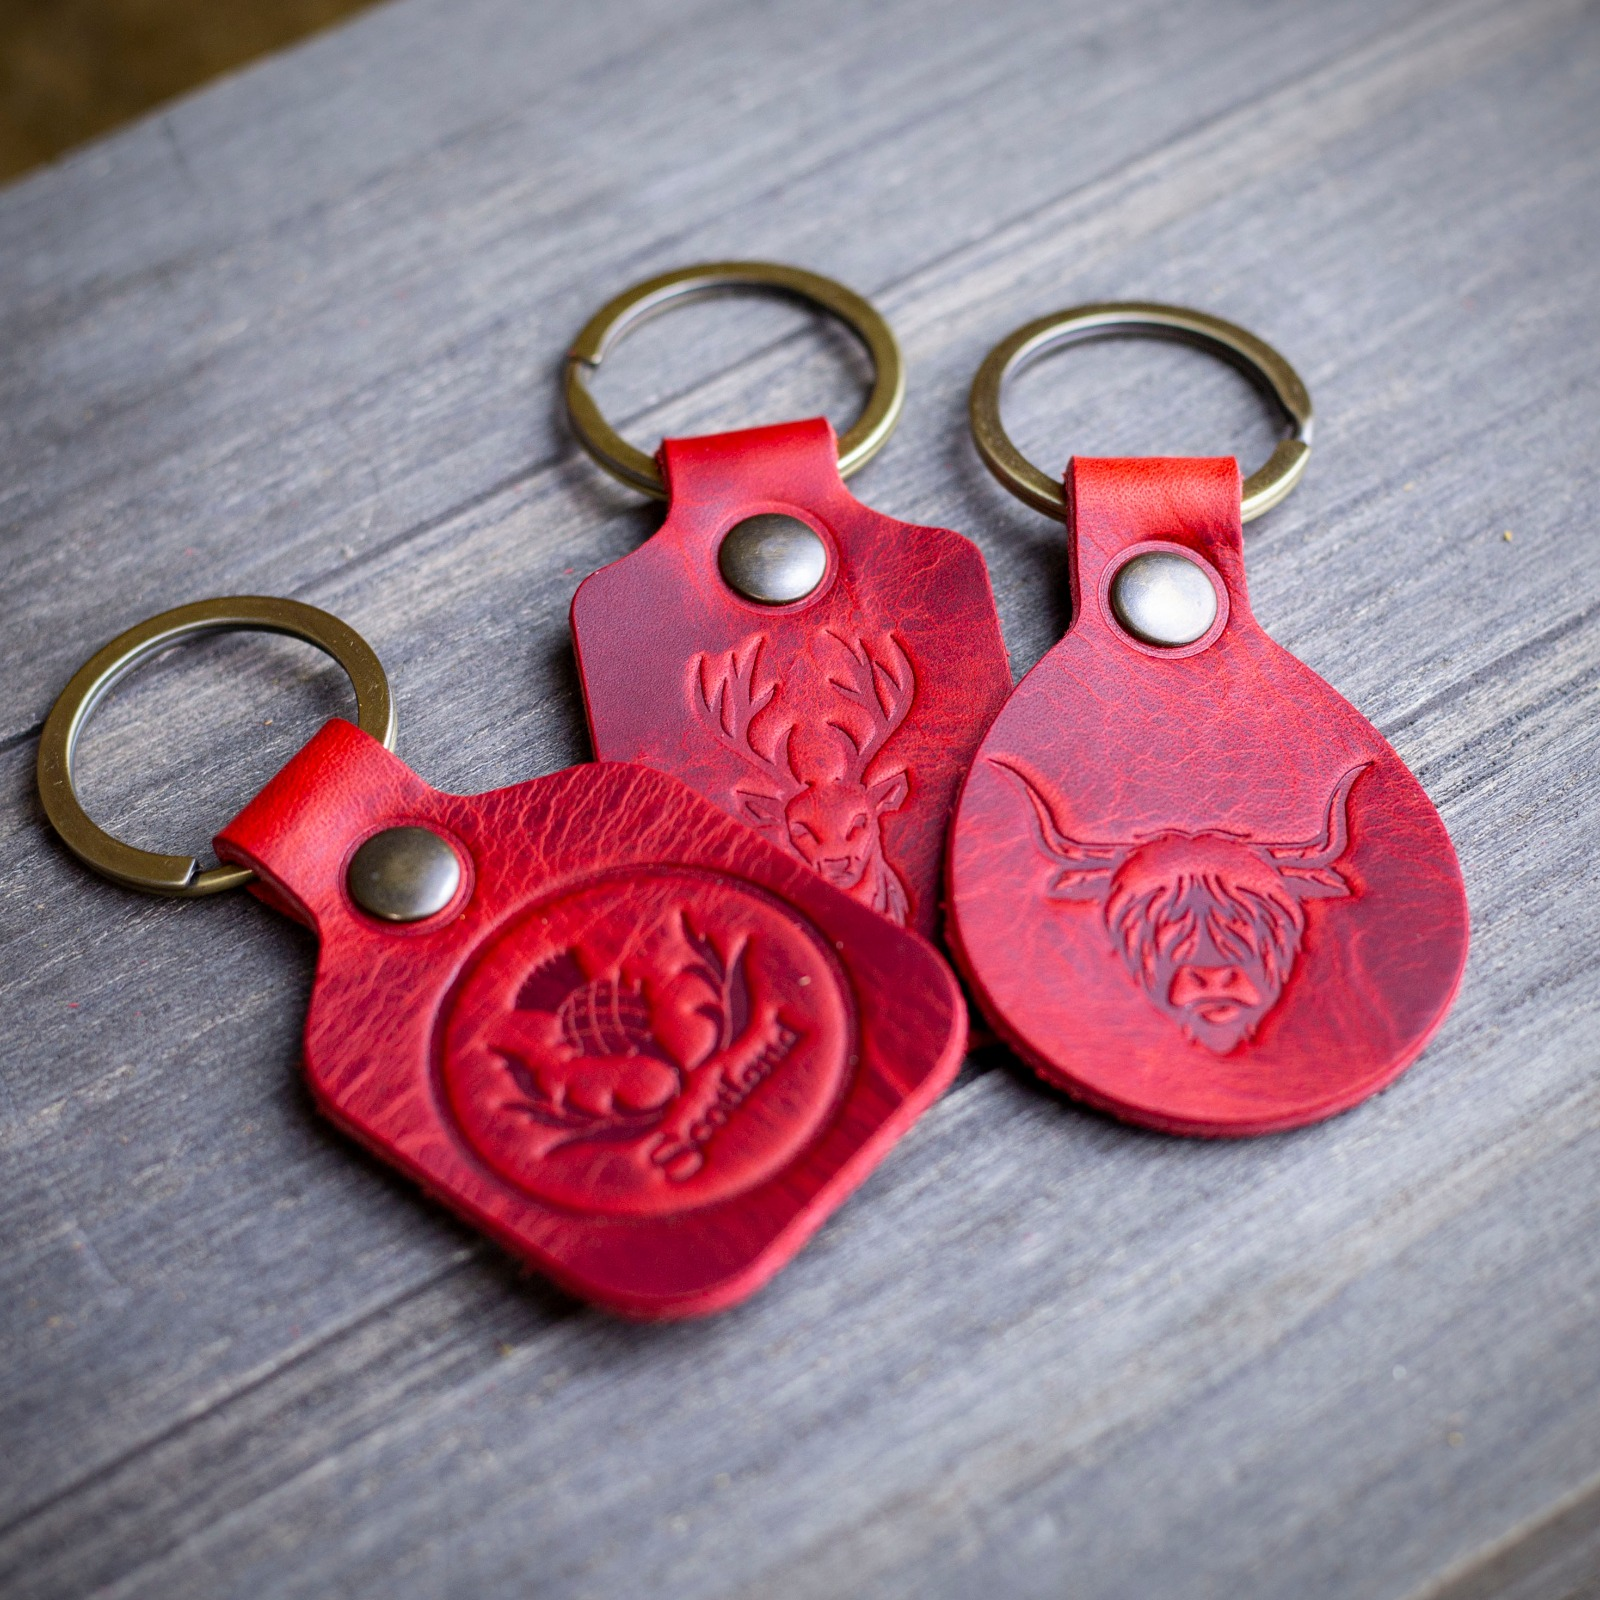 Workshop After Six Highland Stag Key Chain